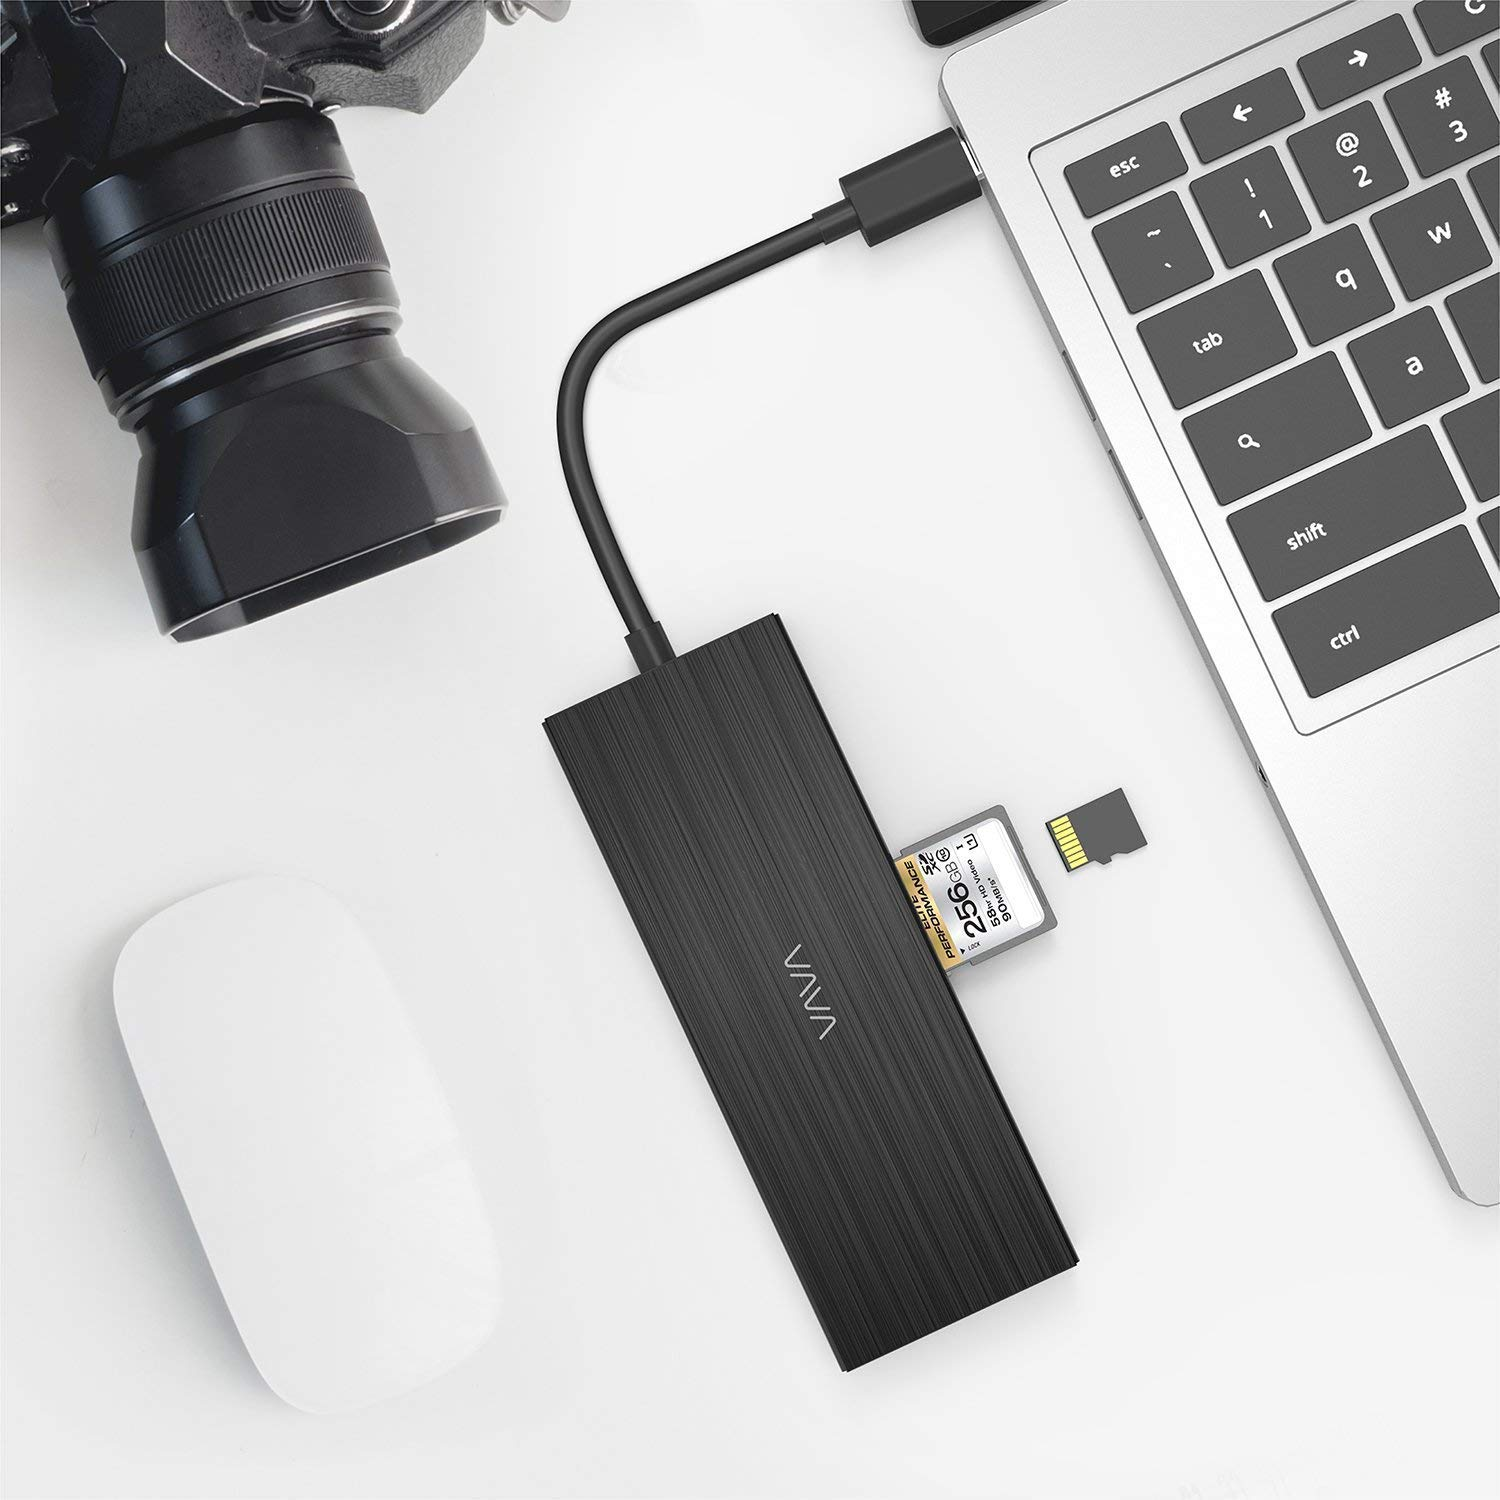 SD Card Reader 3 USB Ports for MacBook,2018// Pro and Type C Windows Laptops VAVA USB C Hub 8-in-1 Adapter with PD Power Delivery 1Gbps Ethernet Port 4K USB C to HDMI